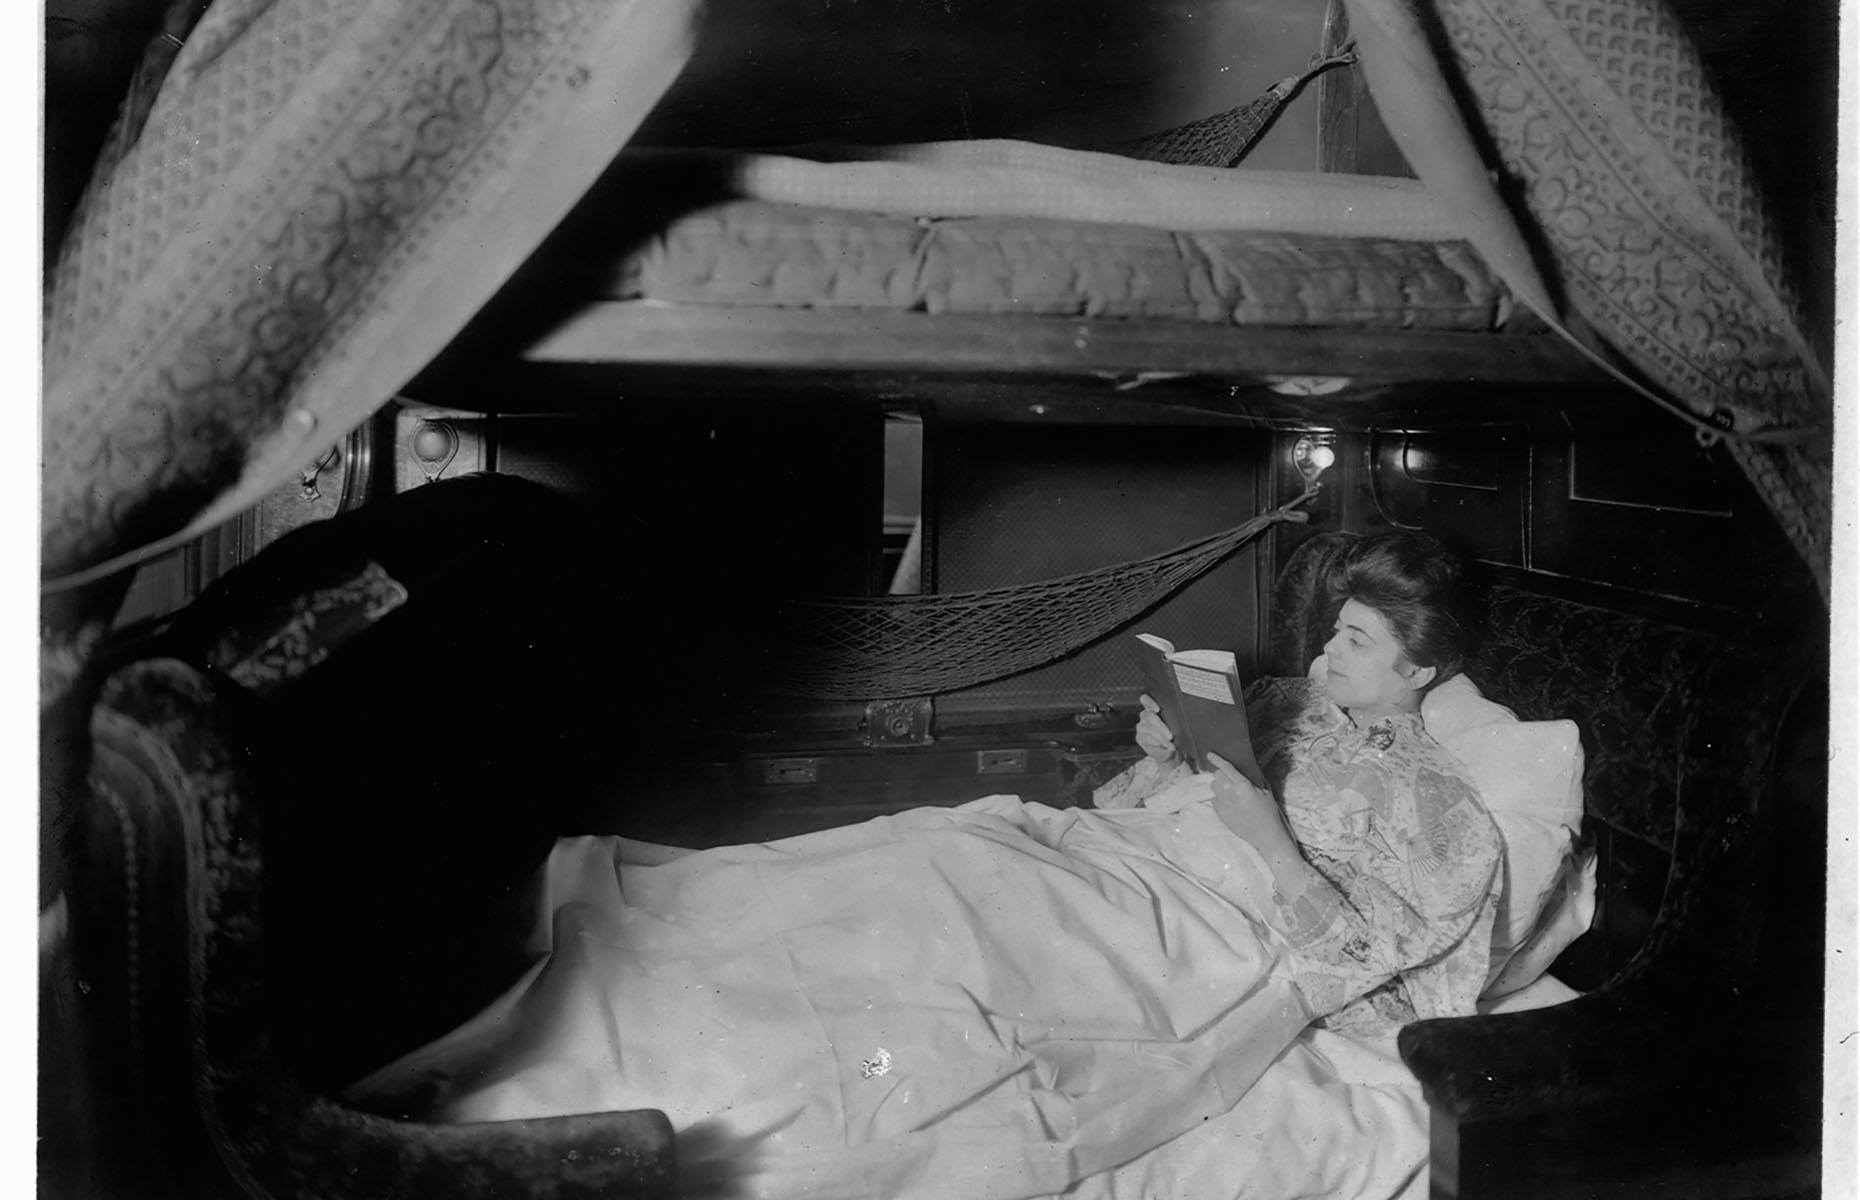 Slide 8 of 32: While train travel was still considered a luxury, especially for the wealthier passengers, rather than just a mode of transport, comfort was a priority. Photographed in 1905, this woman is enjoying reading a book before bed in her spacious bunk on a sleeping car.